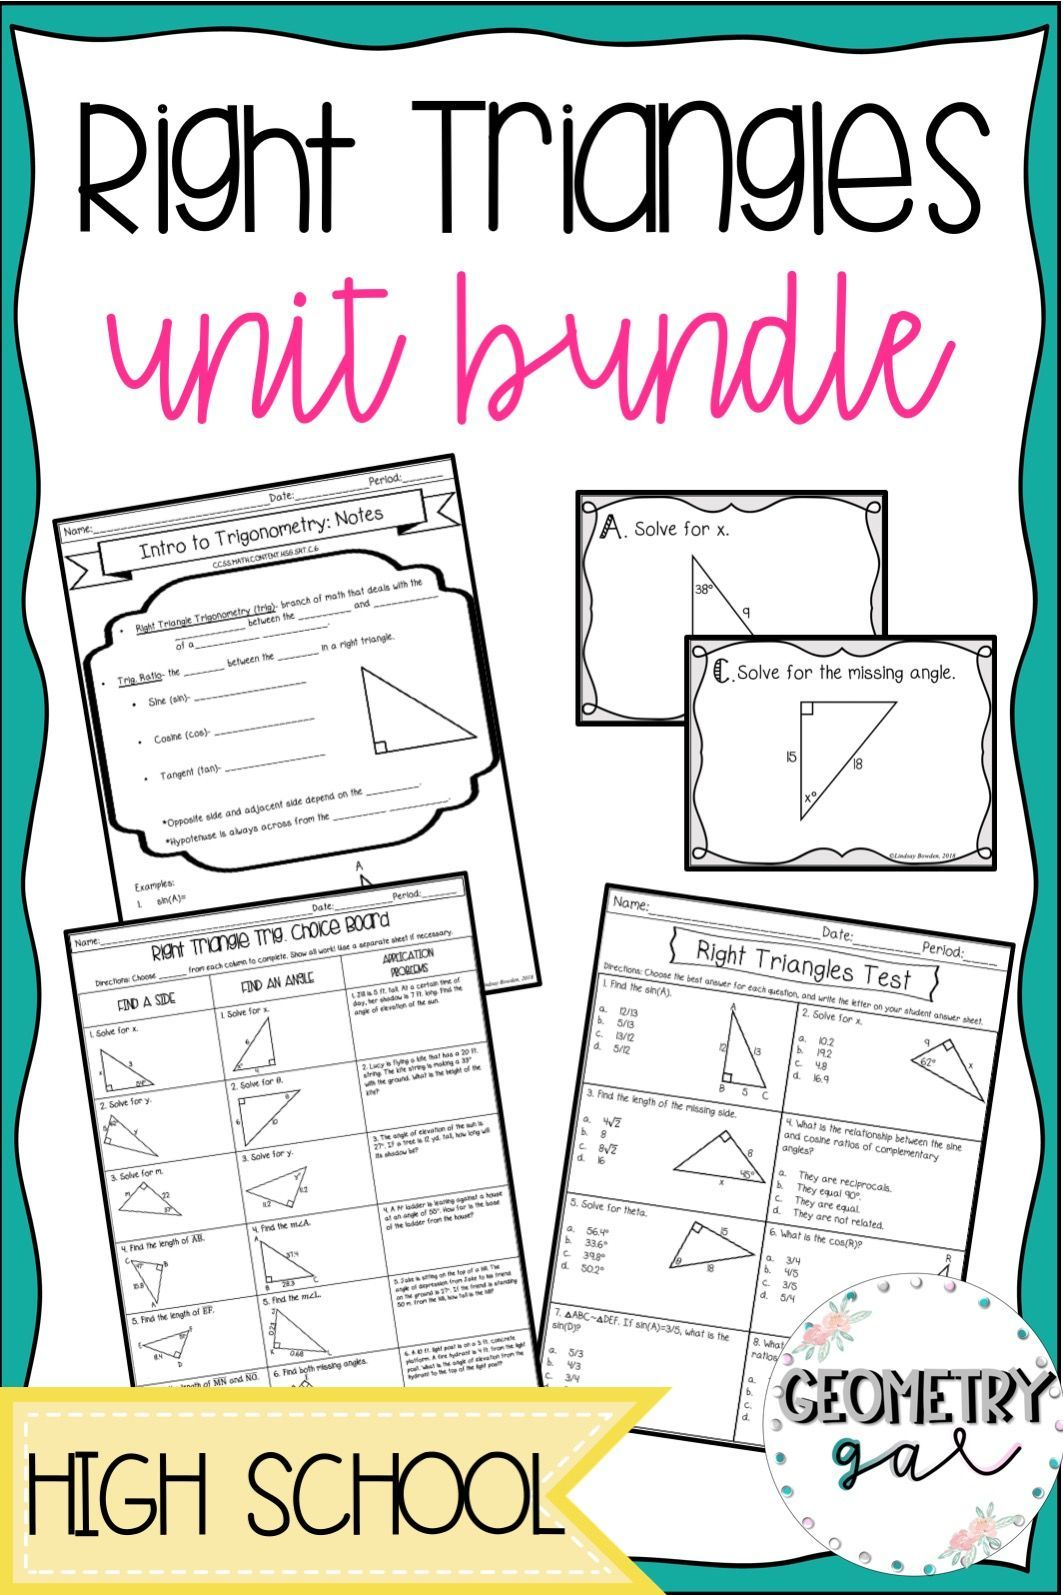 Right Triangles Unit Bundle (With images) | Geometry high ...